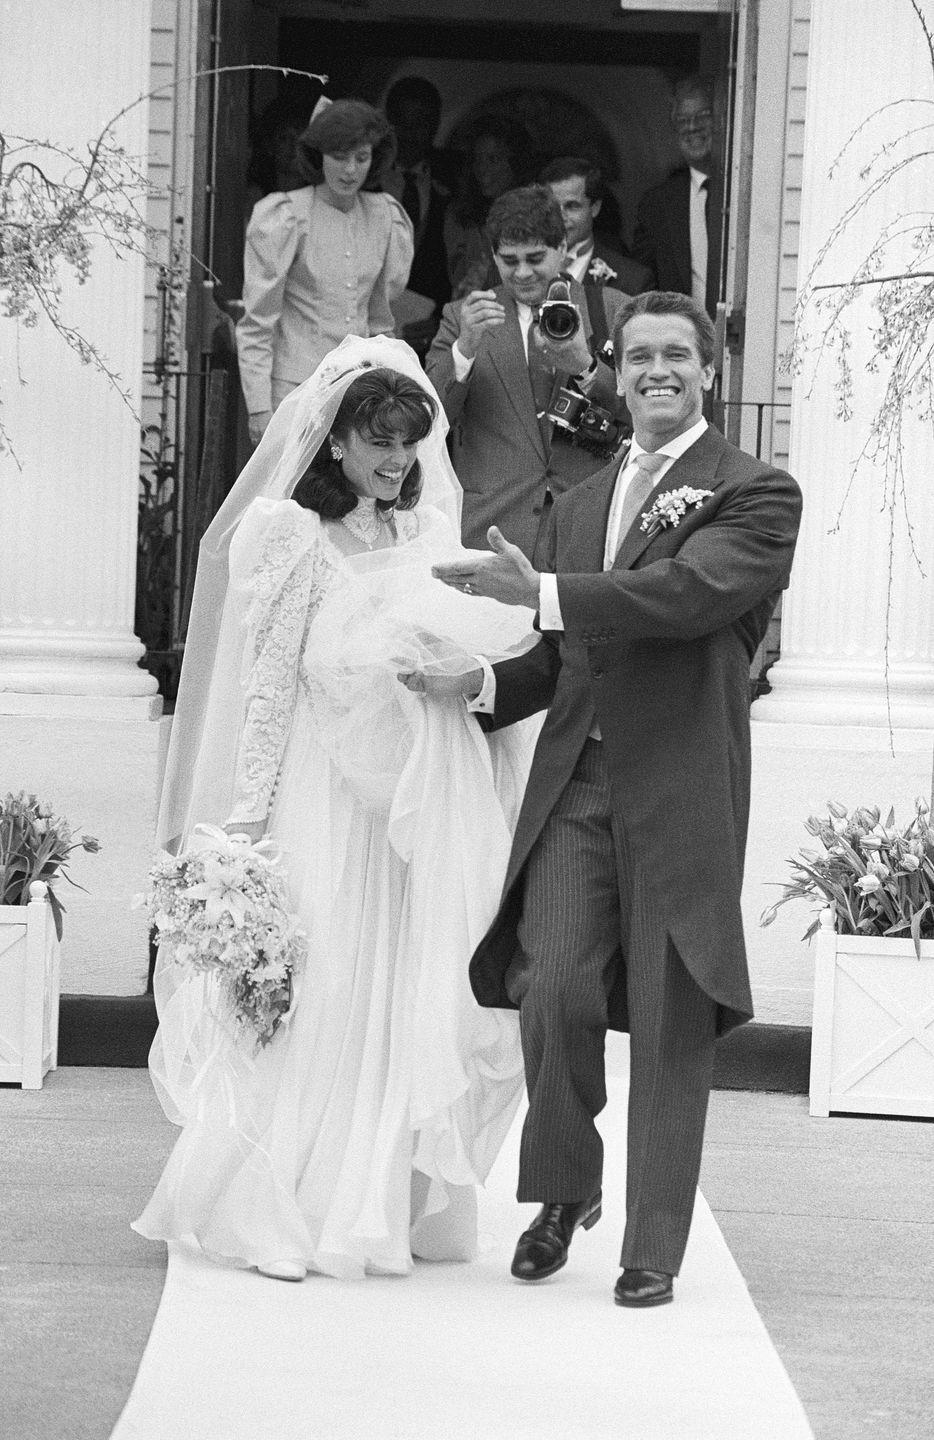 <p>On April 26, Arnold Schwarzenegger and Maria Shriver, a rising journalist and news anchor, married in St. Francis Xavier Church in Hyannis on Cape Cod. They had been dating since 1977. However, after having four children together, they divorced in 2011, when Schwarzenegger admitted to having a child with another woman years earlier.</p>